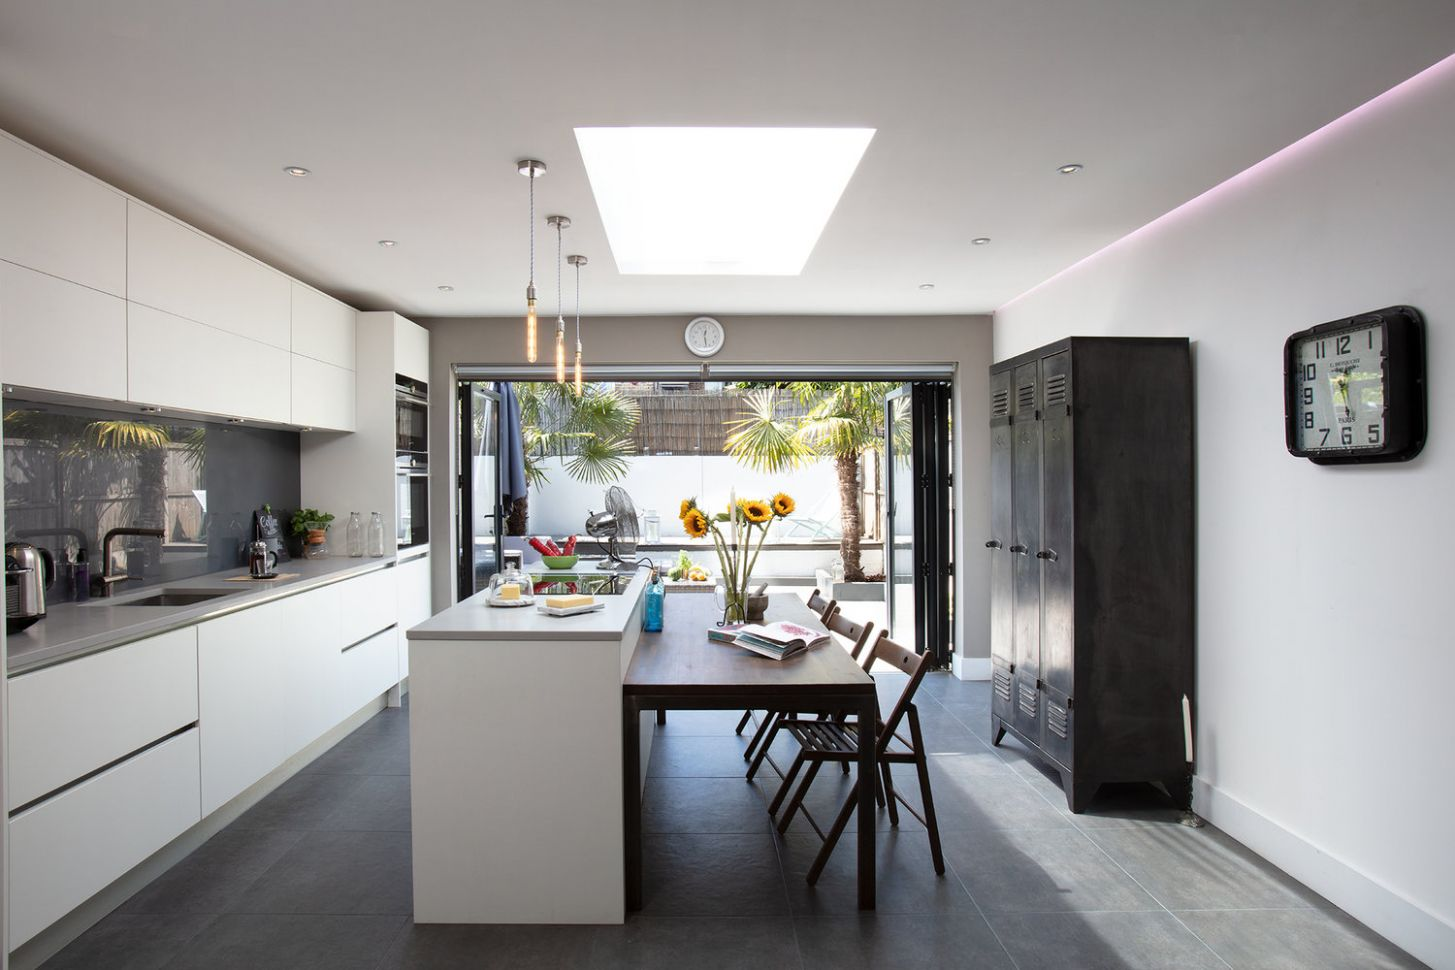 EALING Kitchen Extension Studio Schubert — Studio Schubert ..